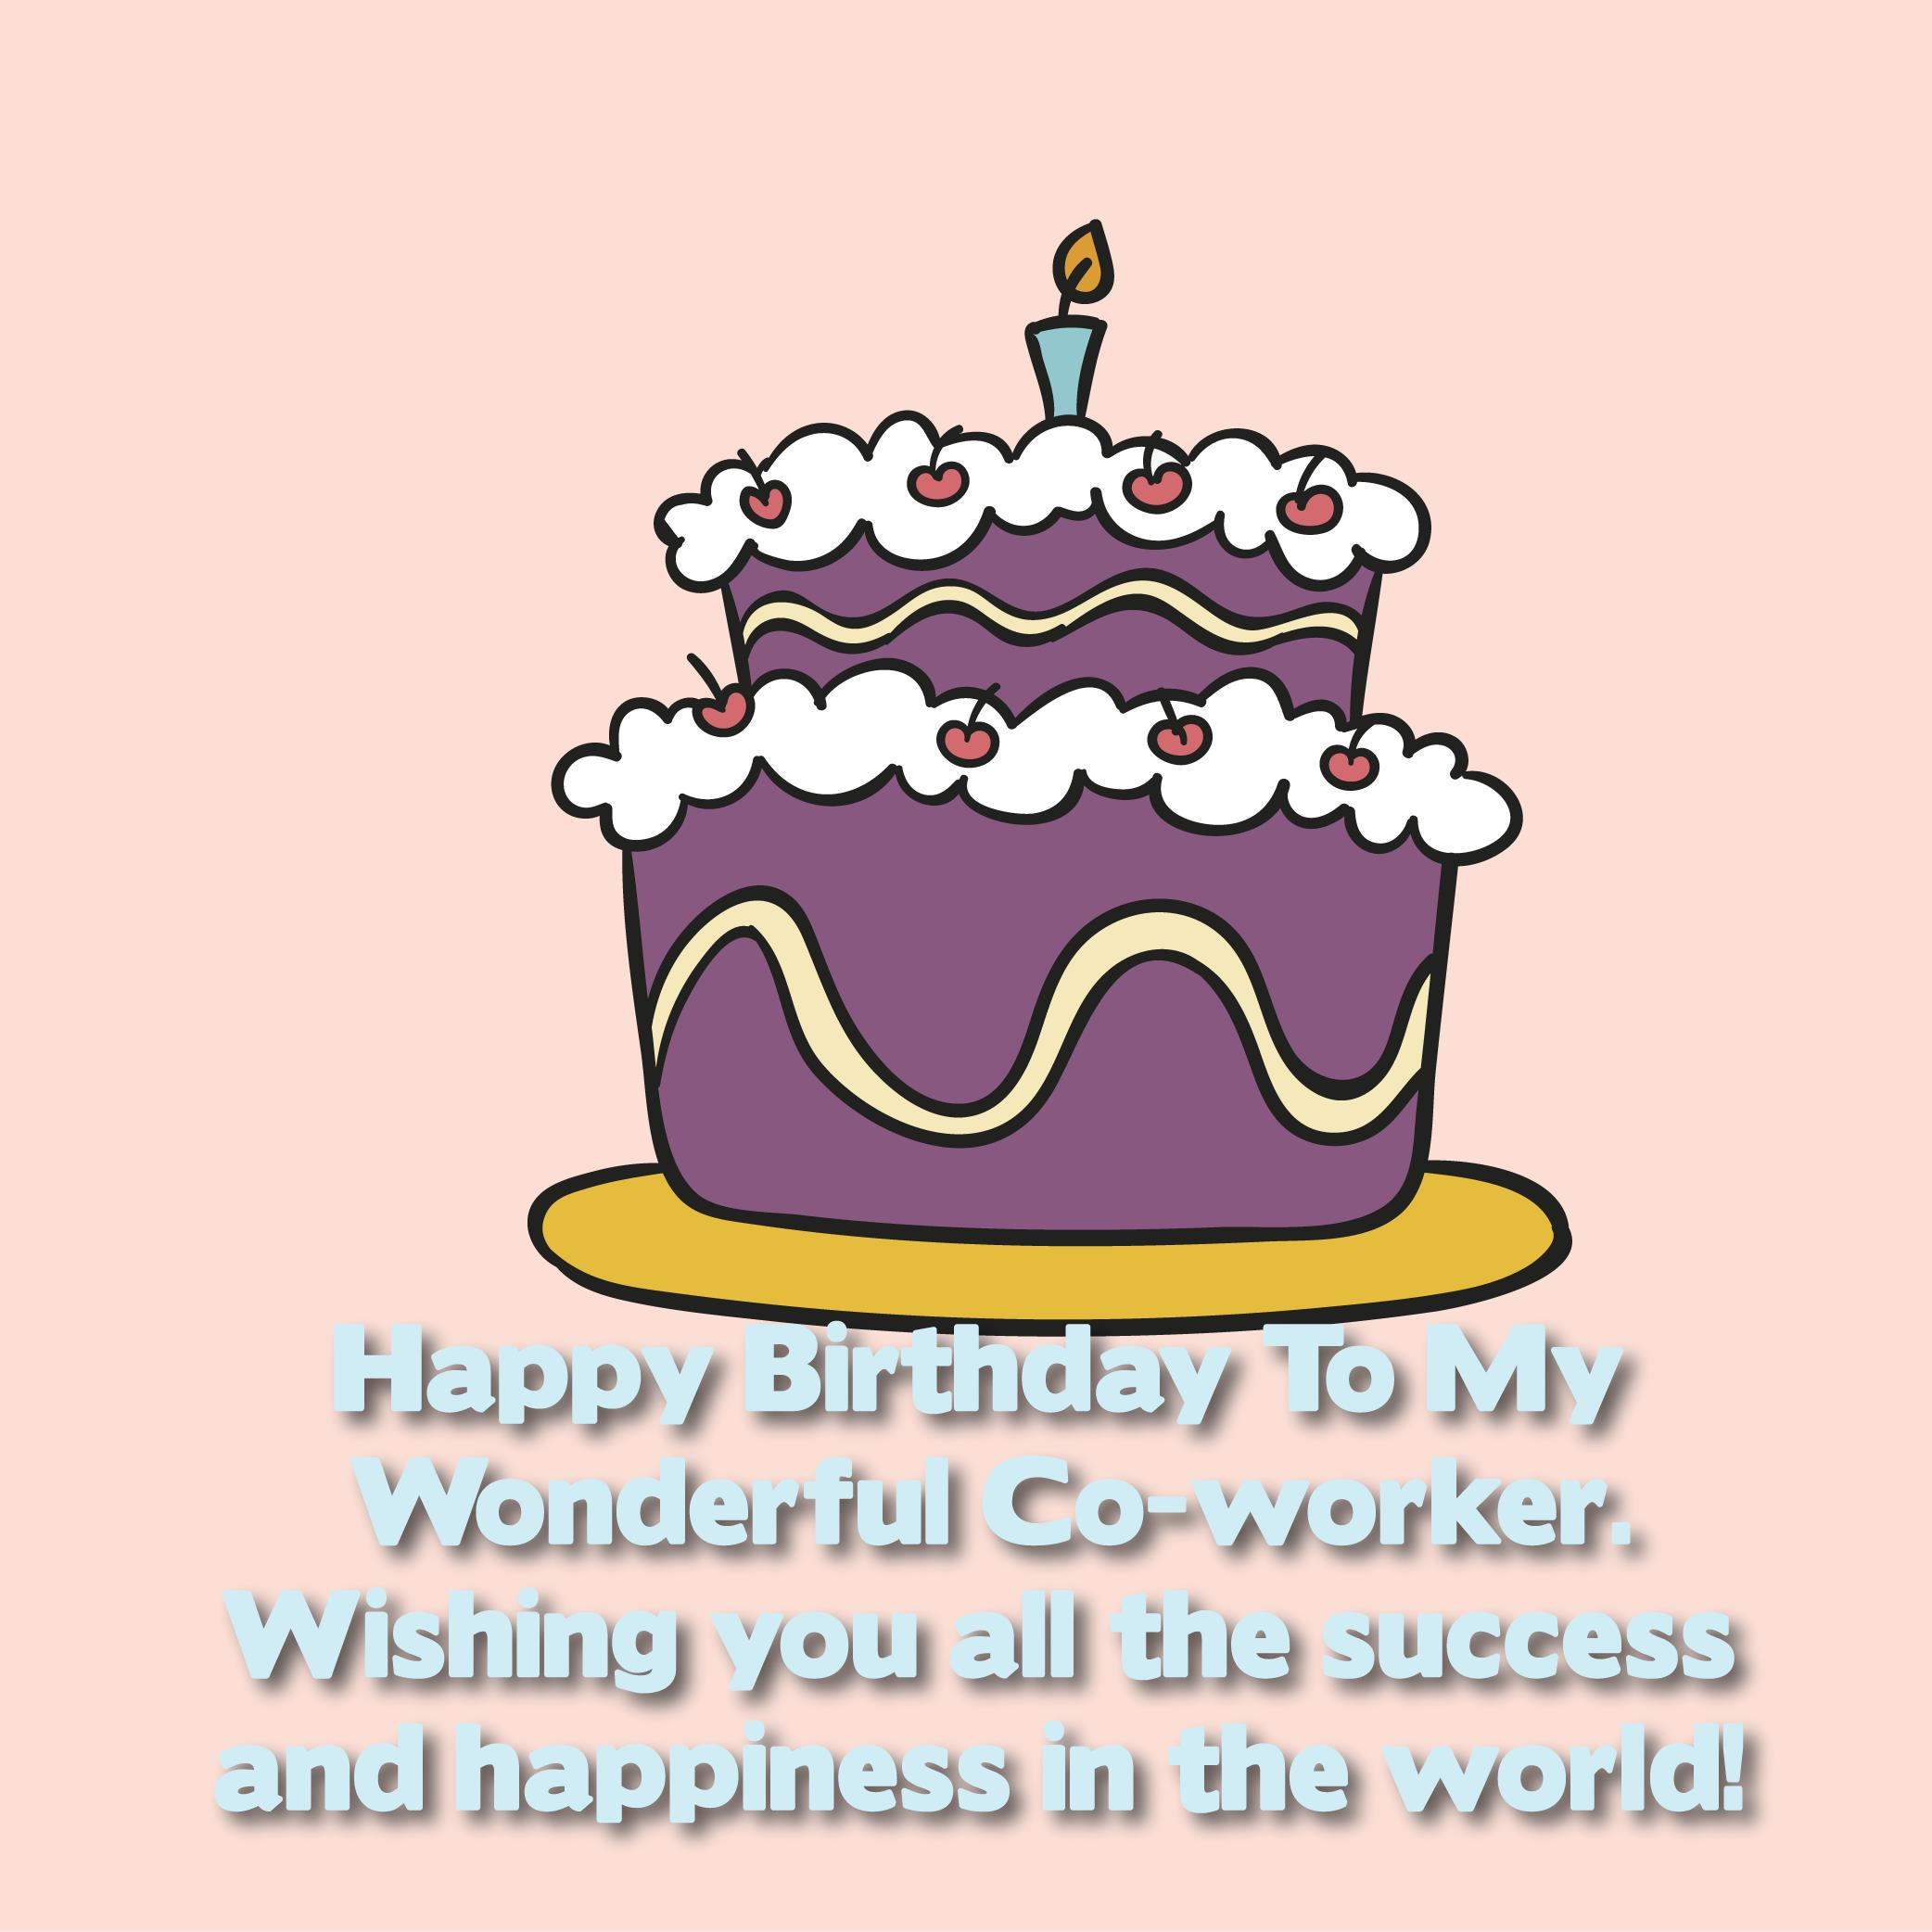 birthday-wishes-for-coworker-02